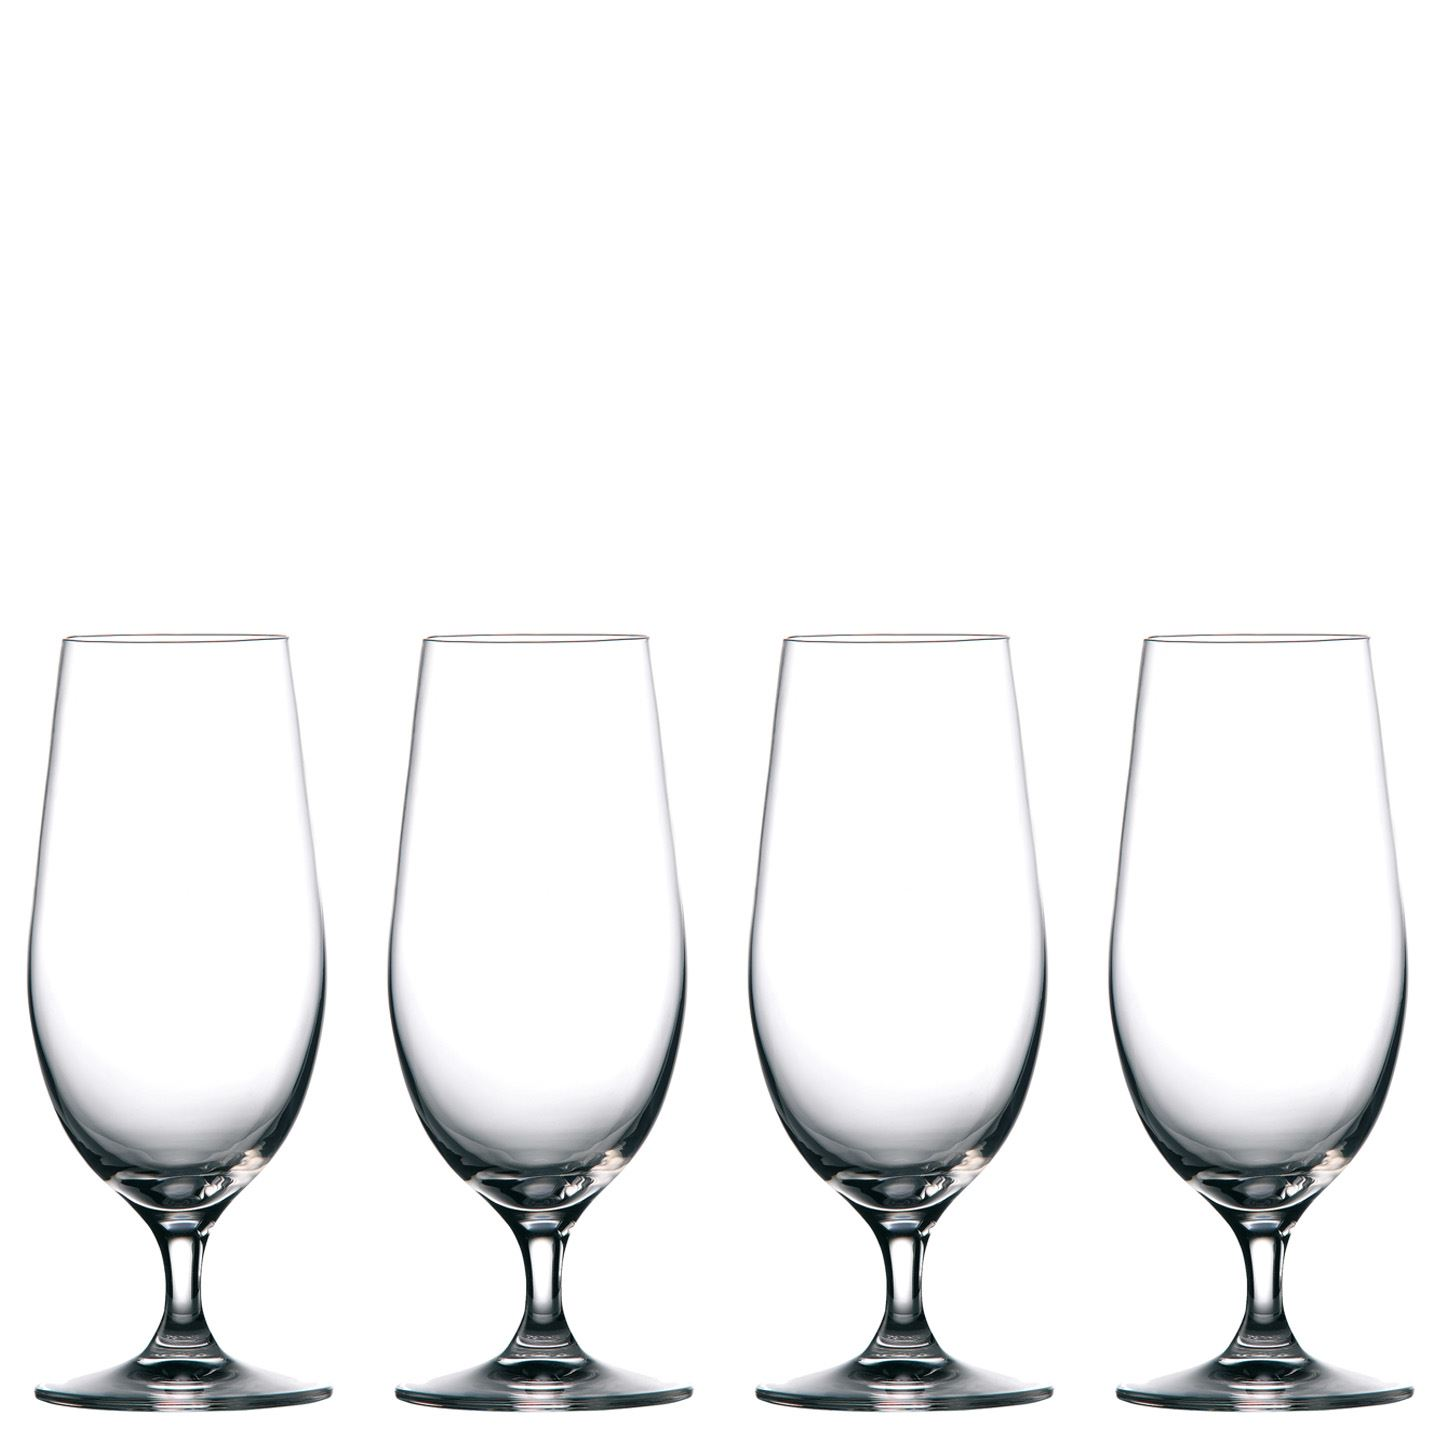 Marquis by Waterford Moments Pilsner Glass | Set of 4 | Crystal | 460 ml